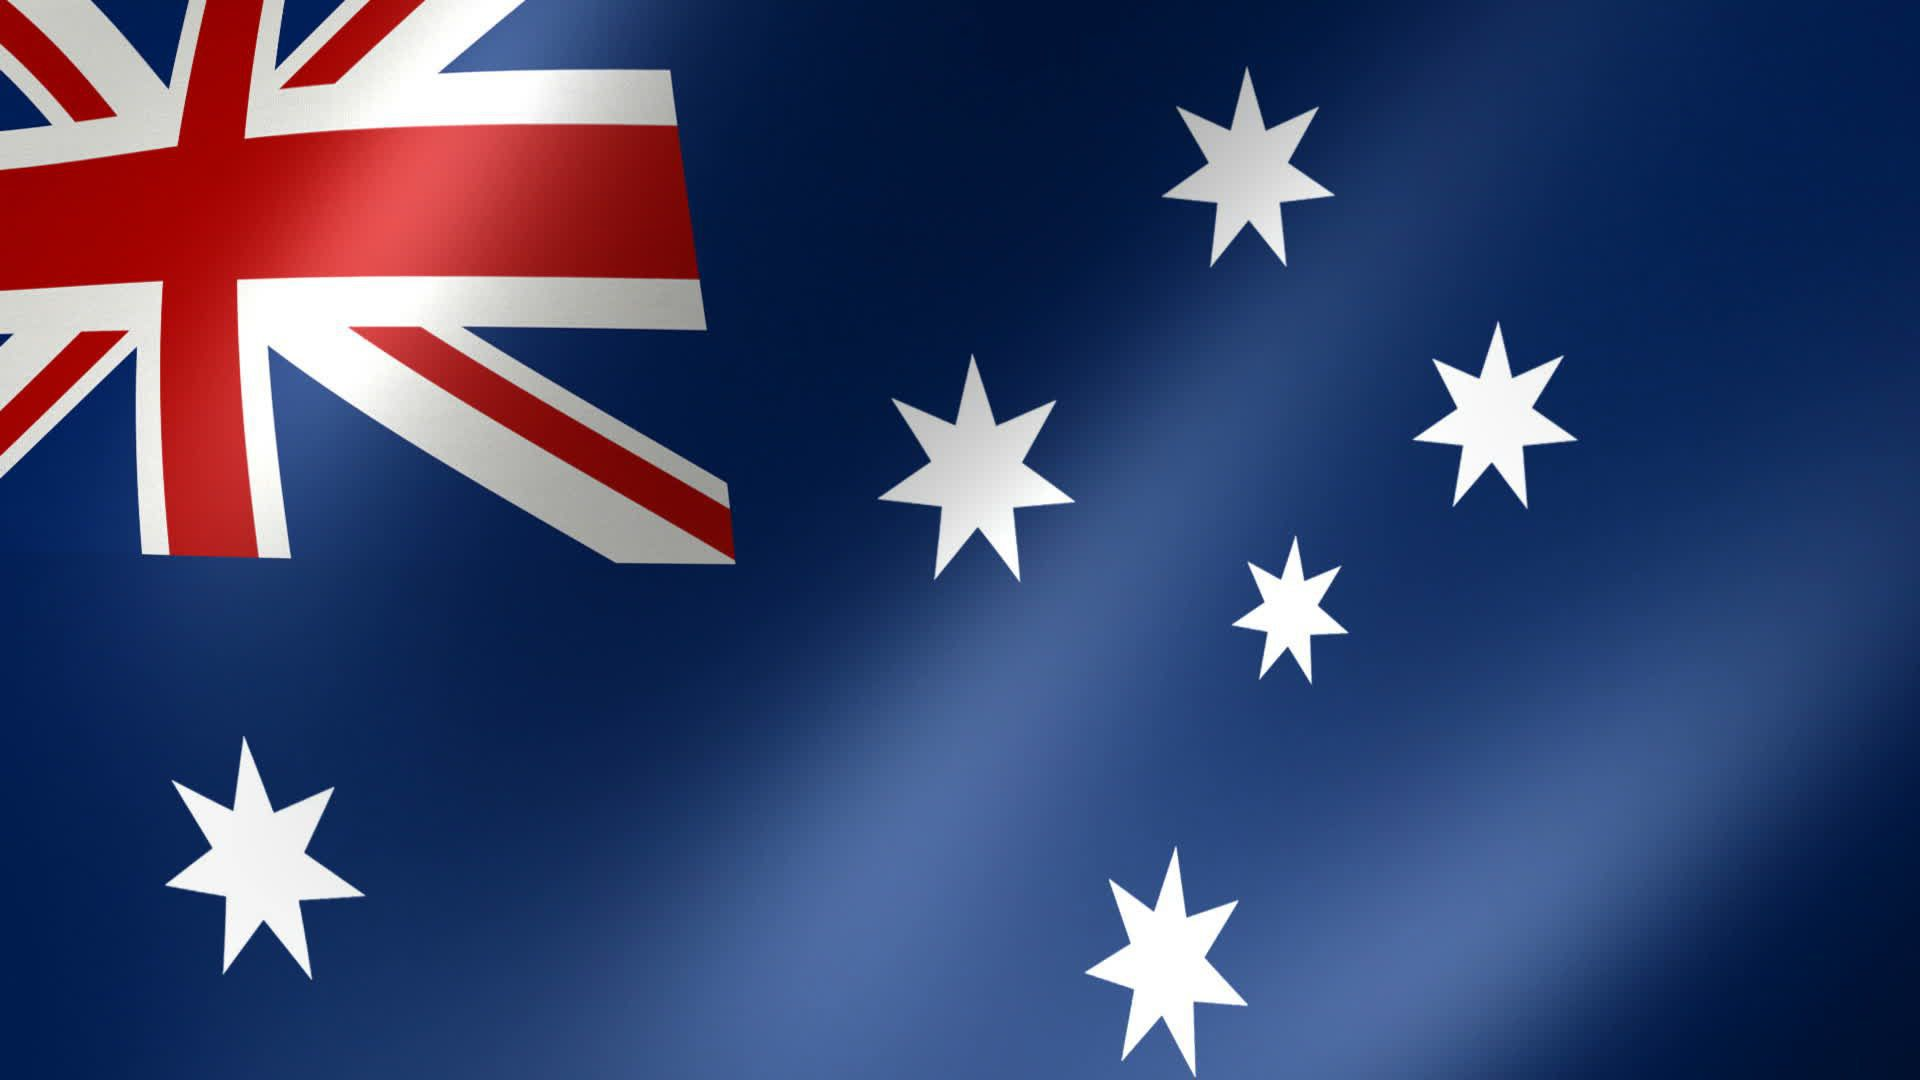 Australia Flag HD Wallpaper